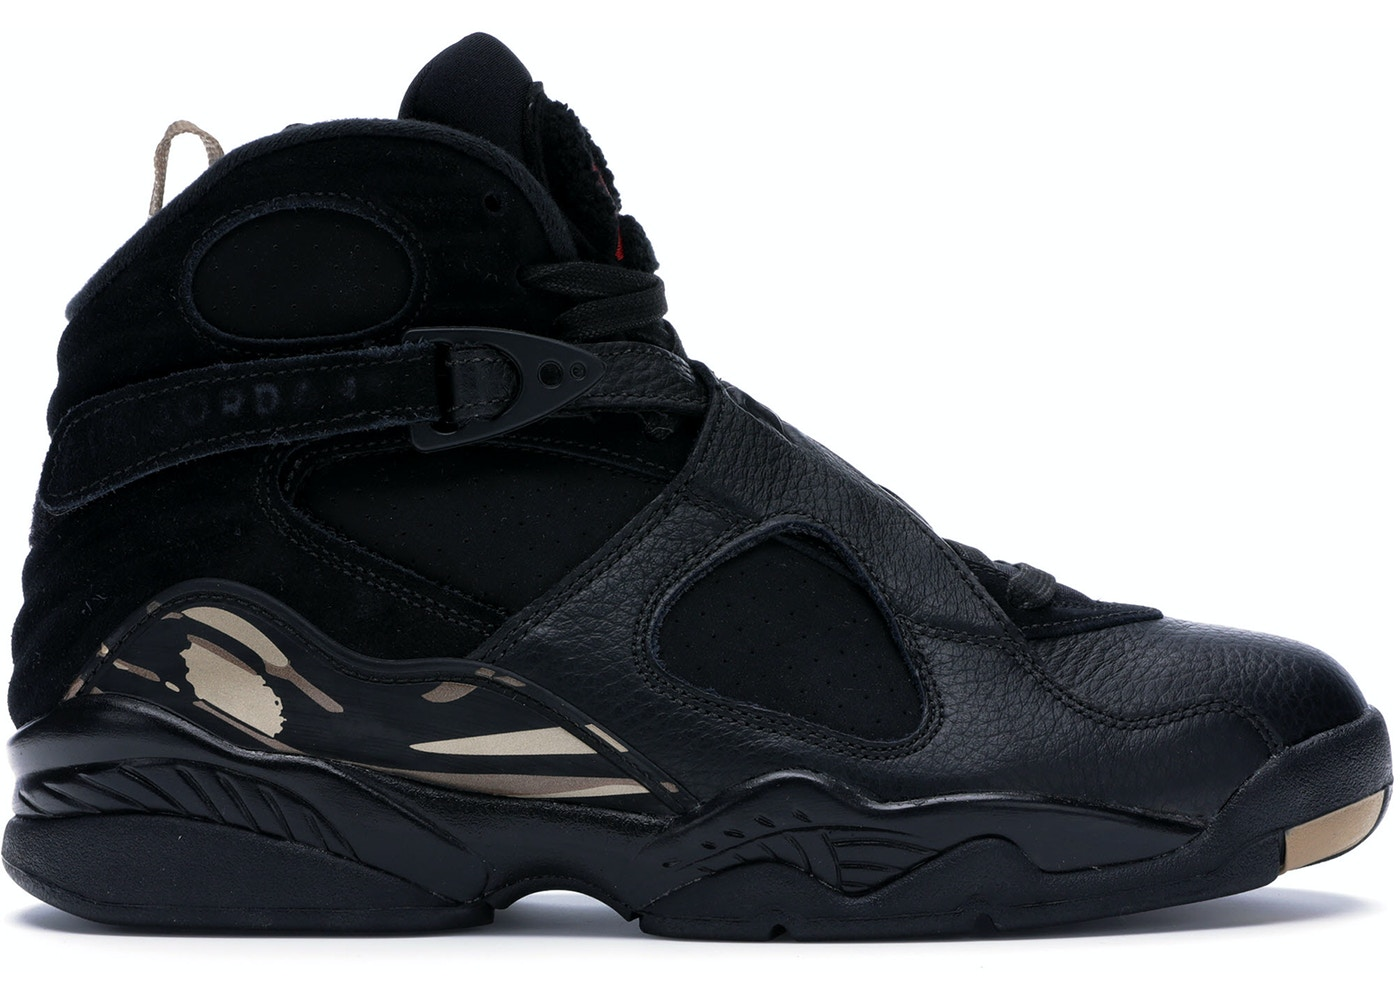 timeless design fa3b2 cd2a4 Jordan 8 Retro OVO Black